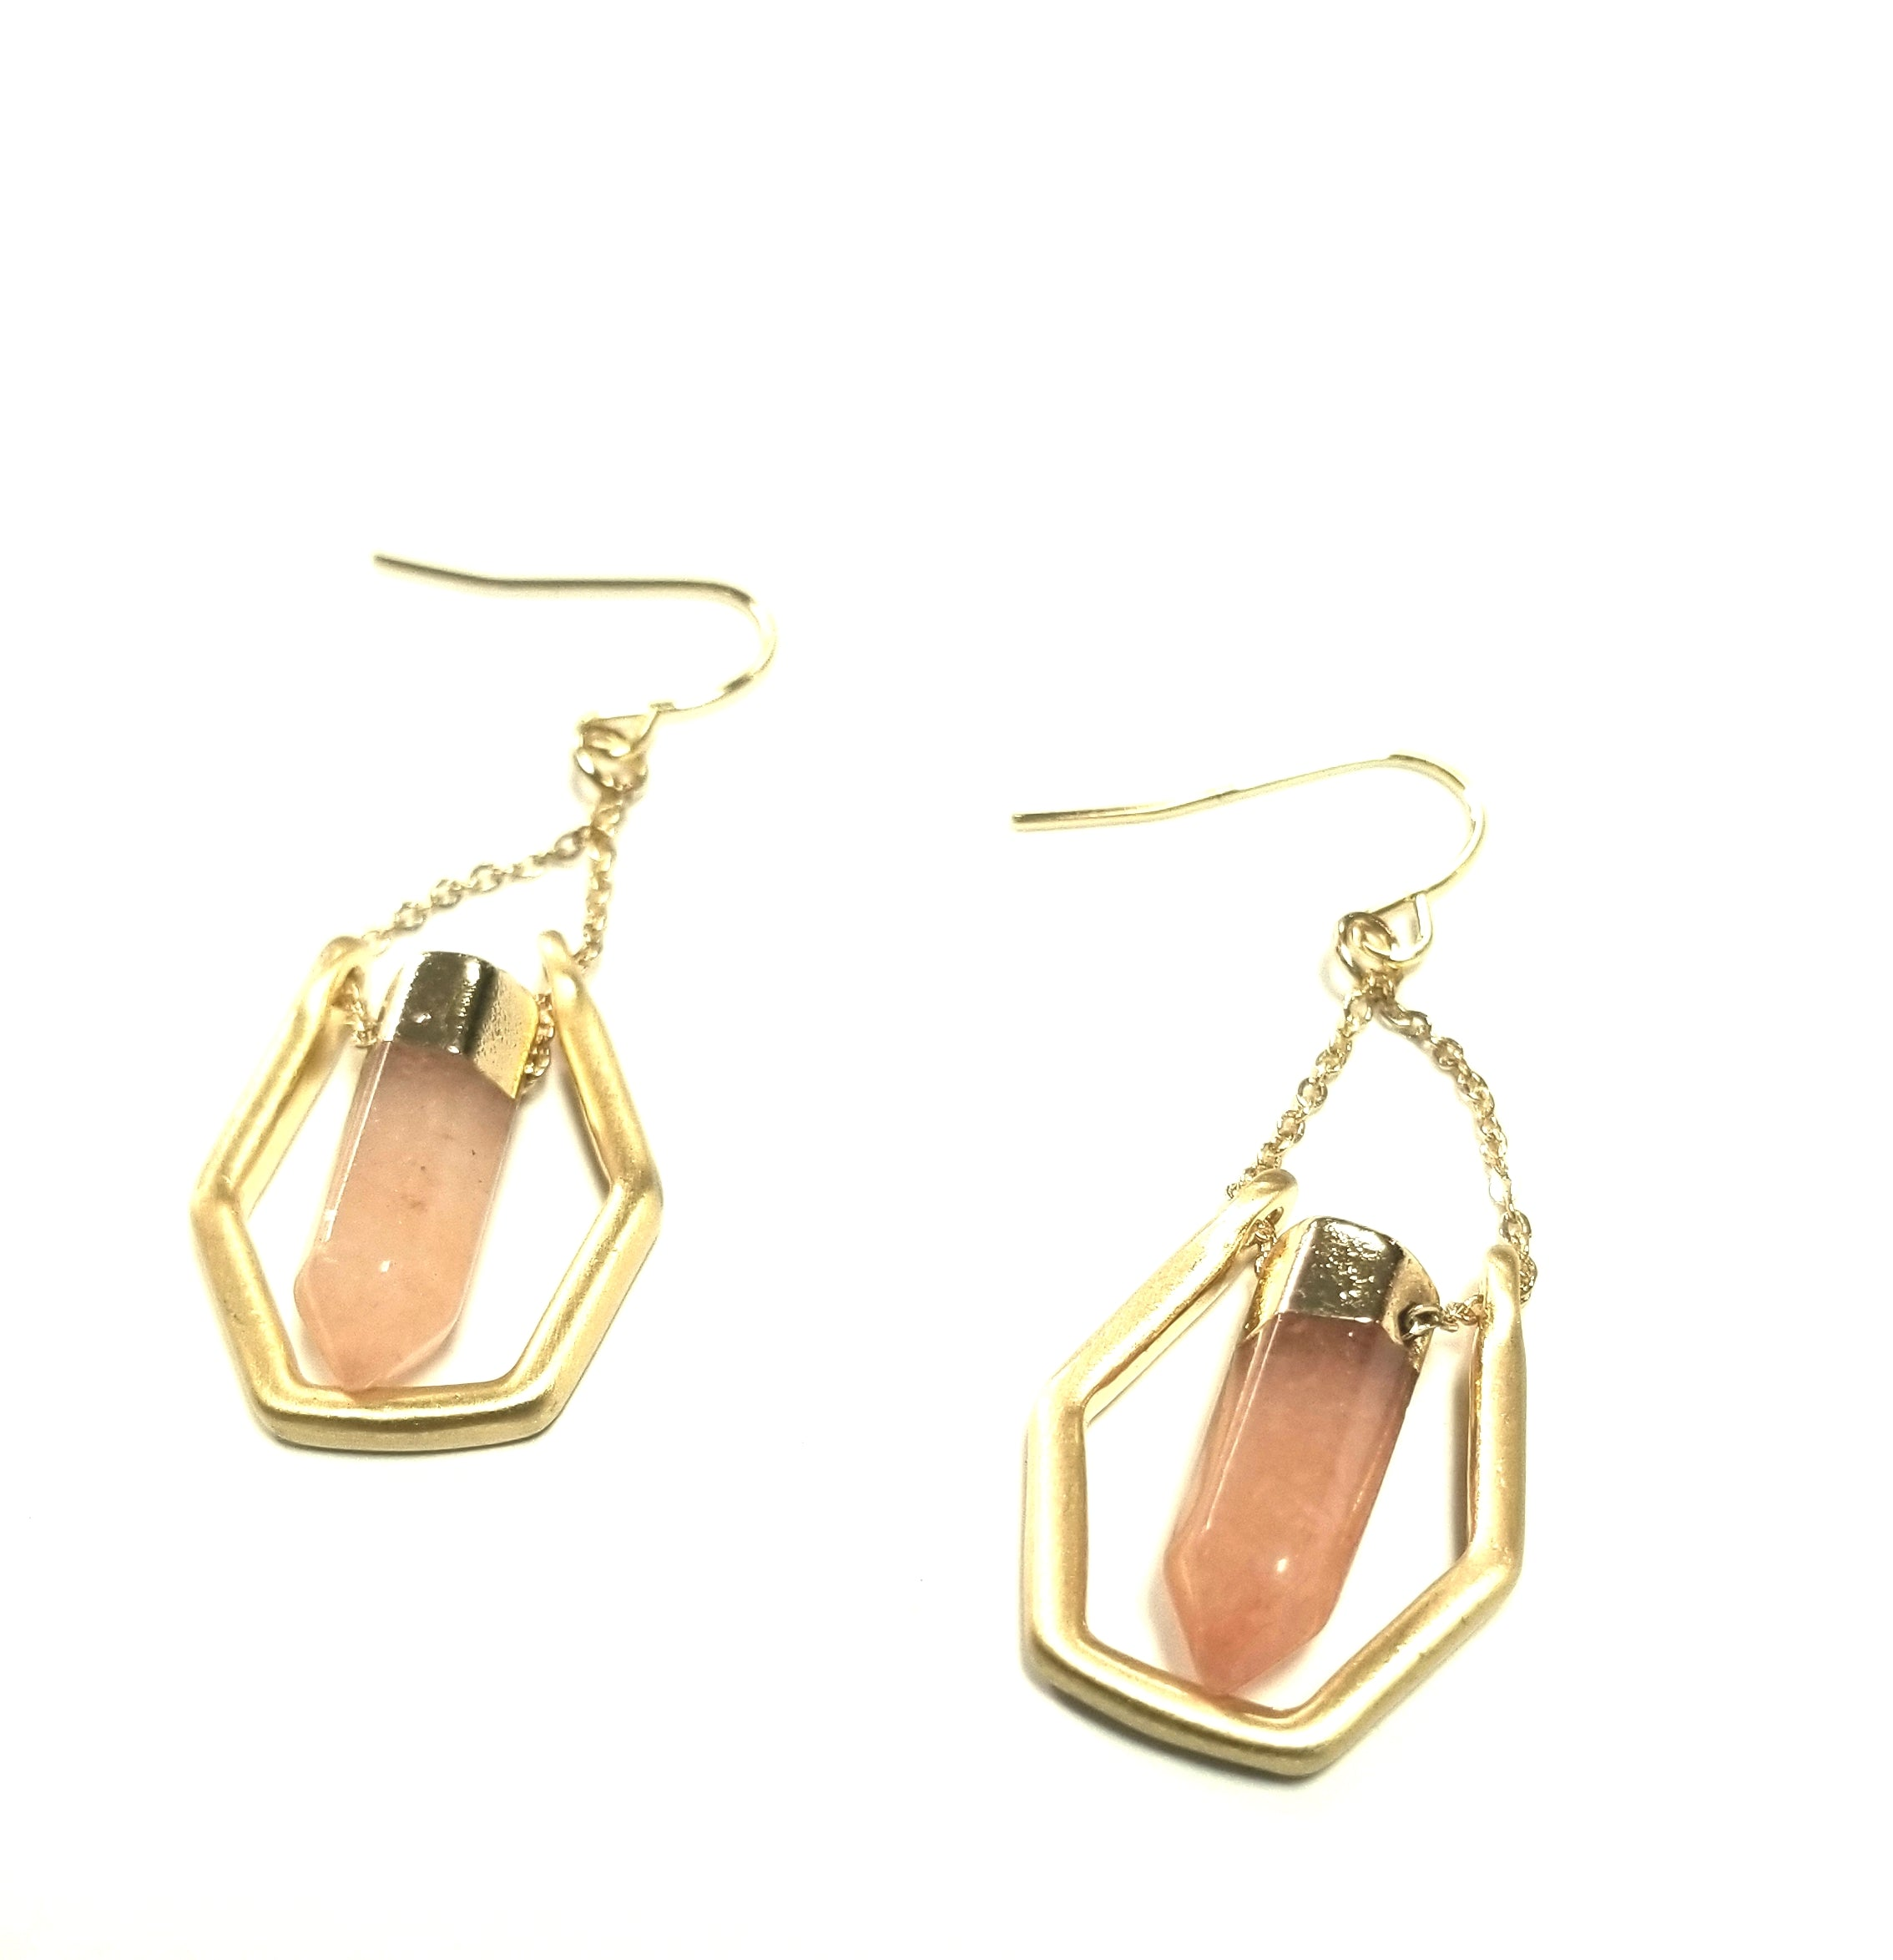 h jewelers product earrings moonstone drop hexagon posts recent d